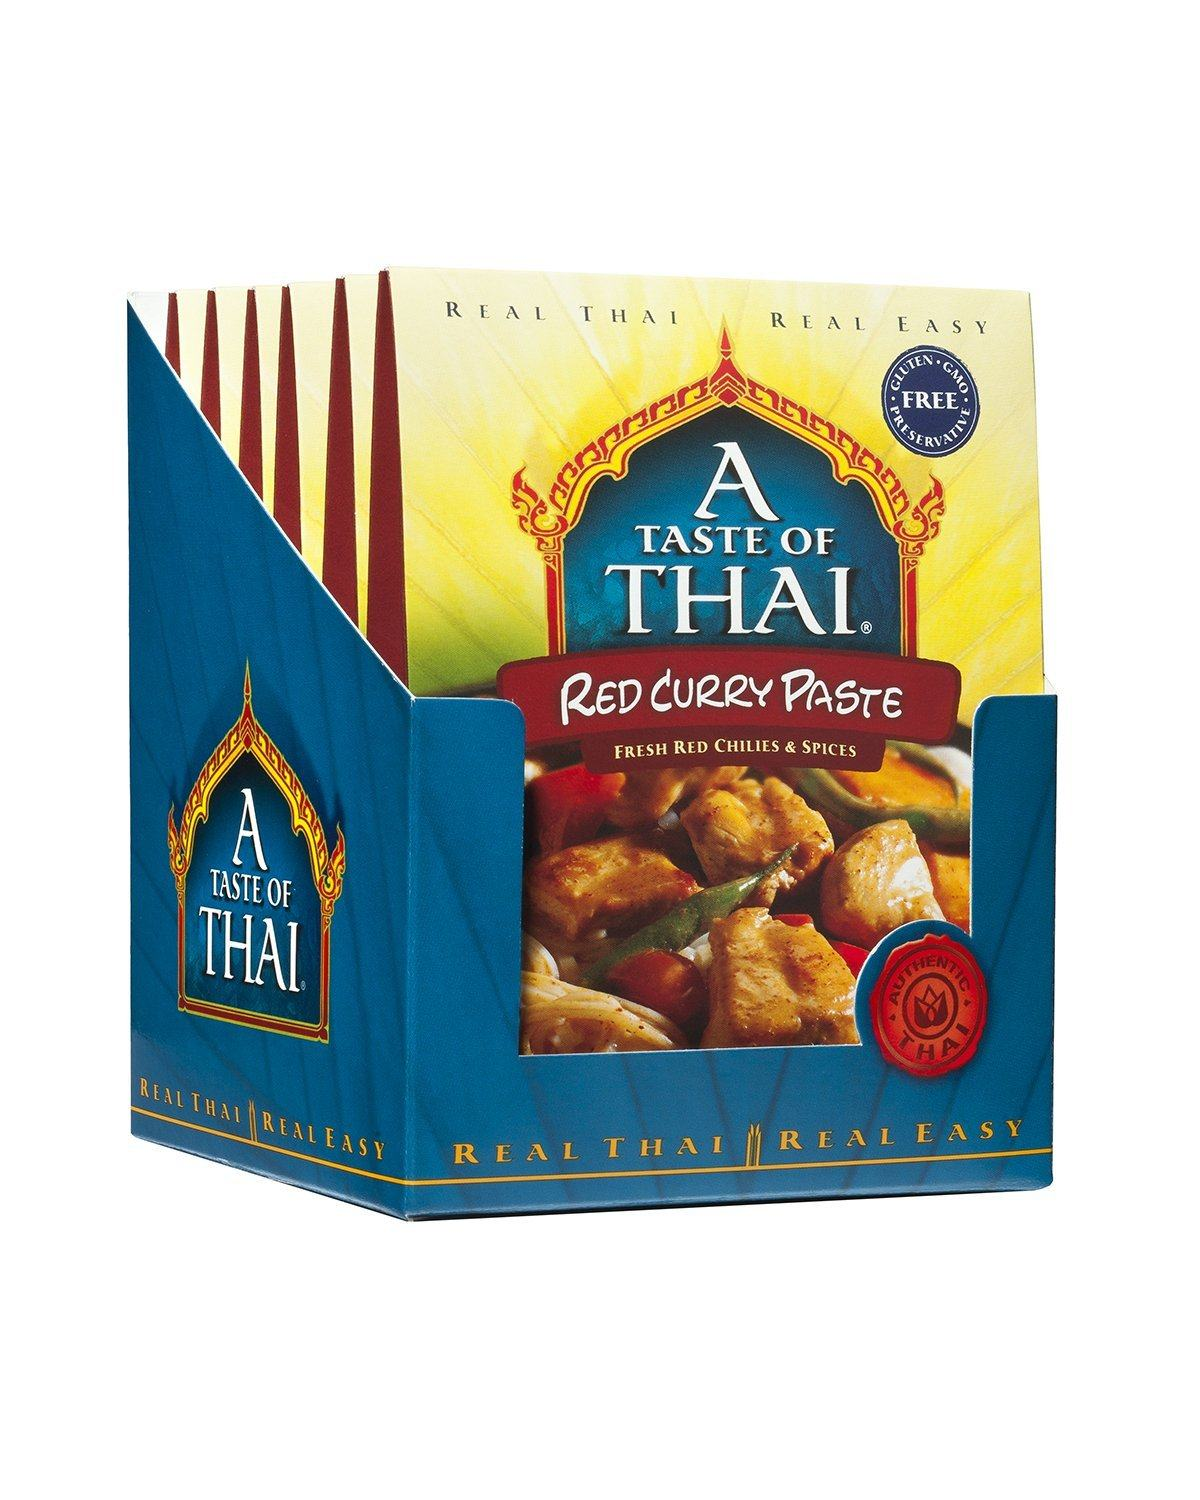 A Taste of Thai Curry Pastes A Taste of Thai Red 1.75 Oz-6 Count